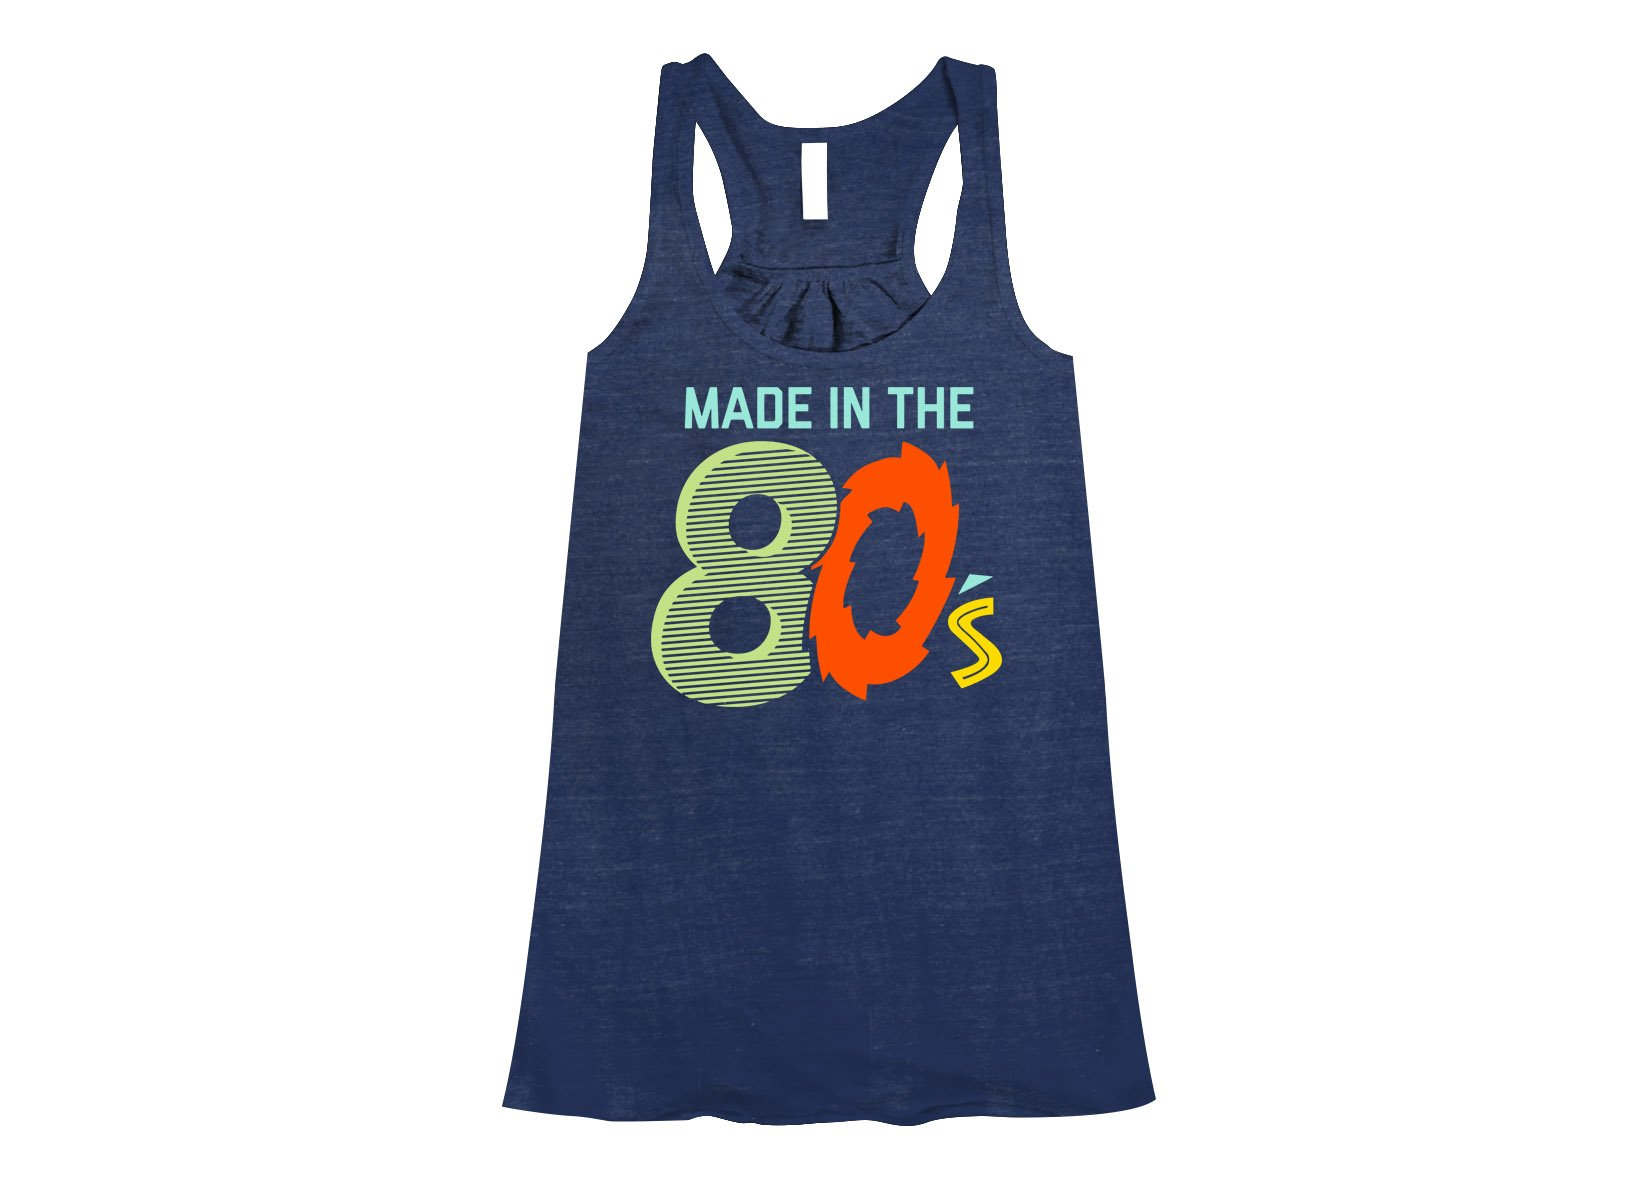 Made In The 80's on Womens Tanks T-Shirt